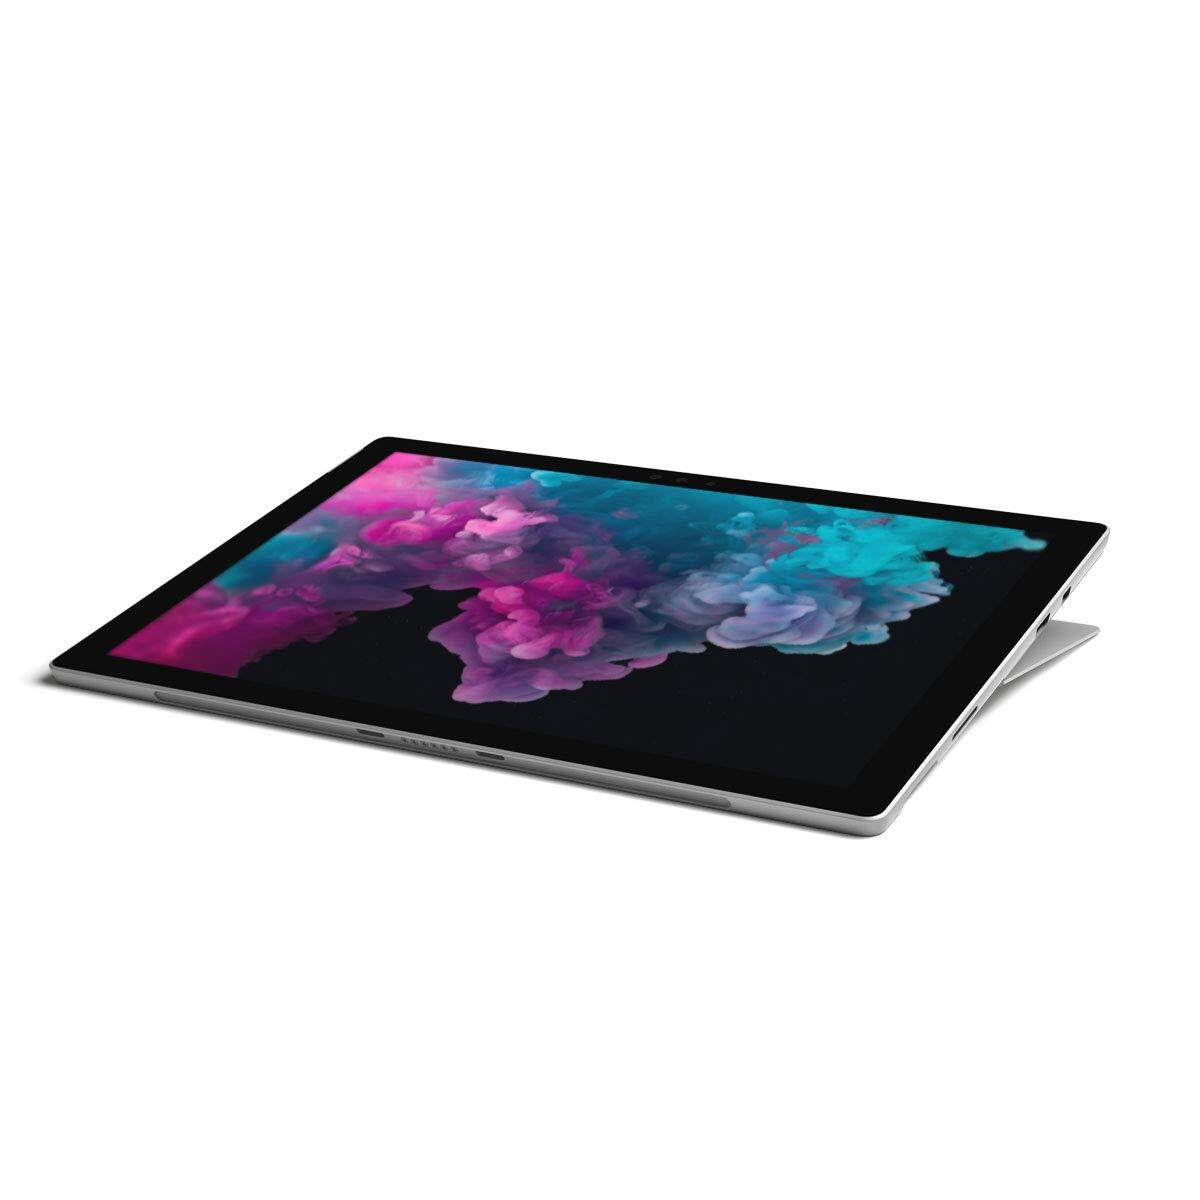 Microsoft Surface Pro 6 (Intel Core i5, 8GB RAM, 128GB) - Newest Version and Microsoft Surface Pro Type Cover – Black, Platinum - NKR-00001 Malaysia